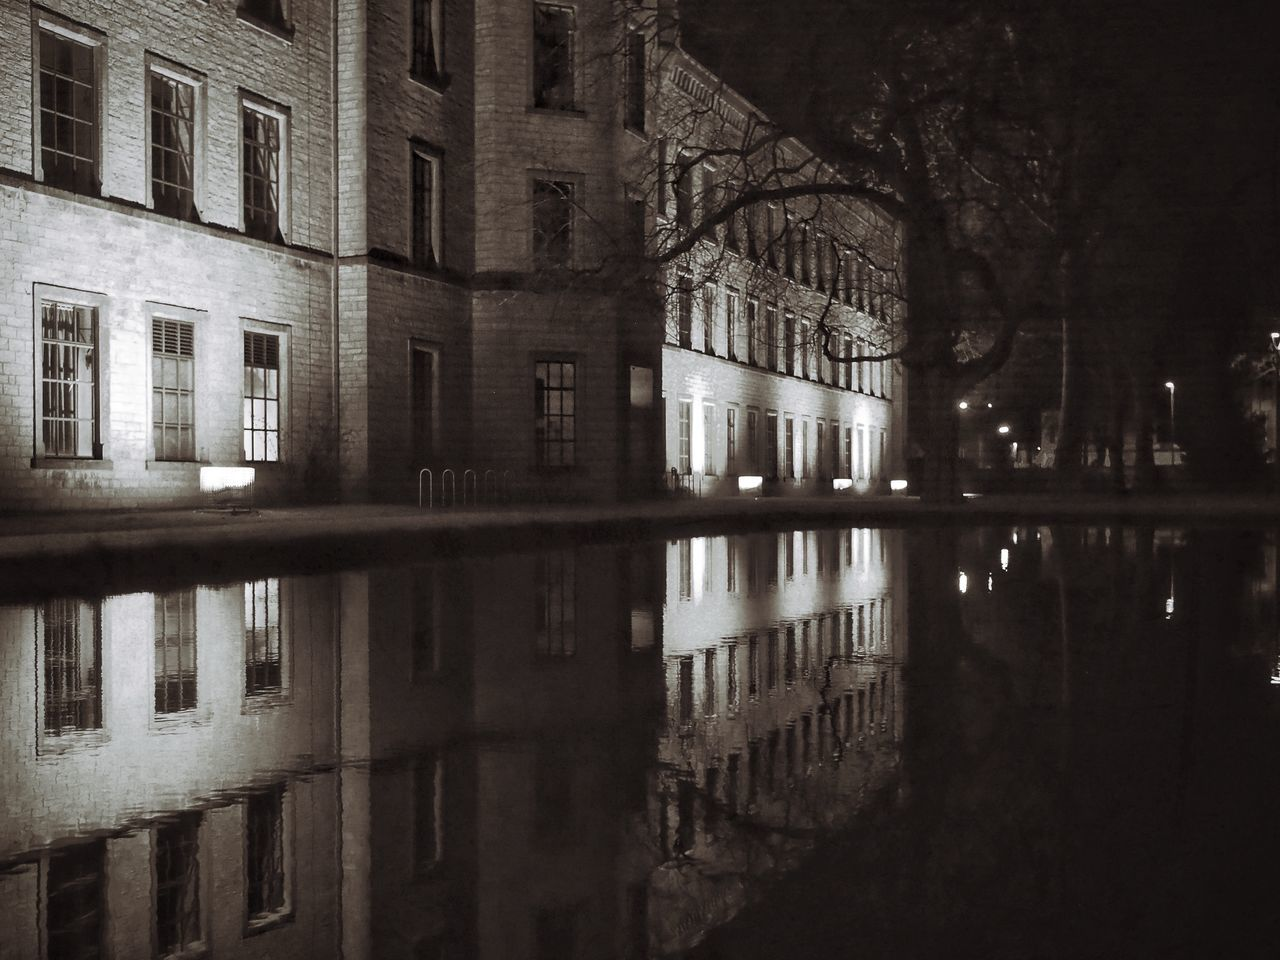 reflection, architecture, building exterior, built structure, night, illuminated, no people, outdoors, city, water, sky